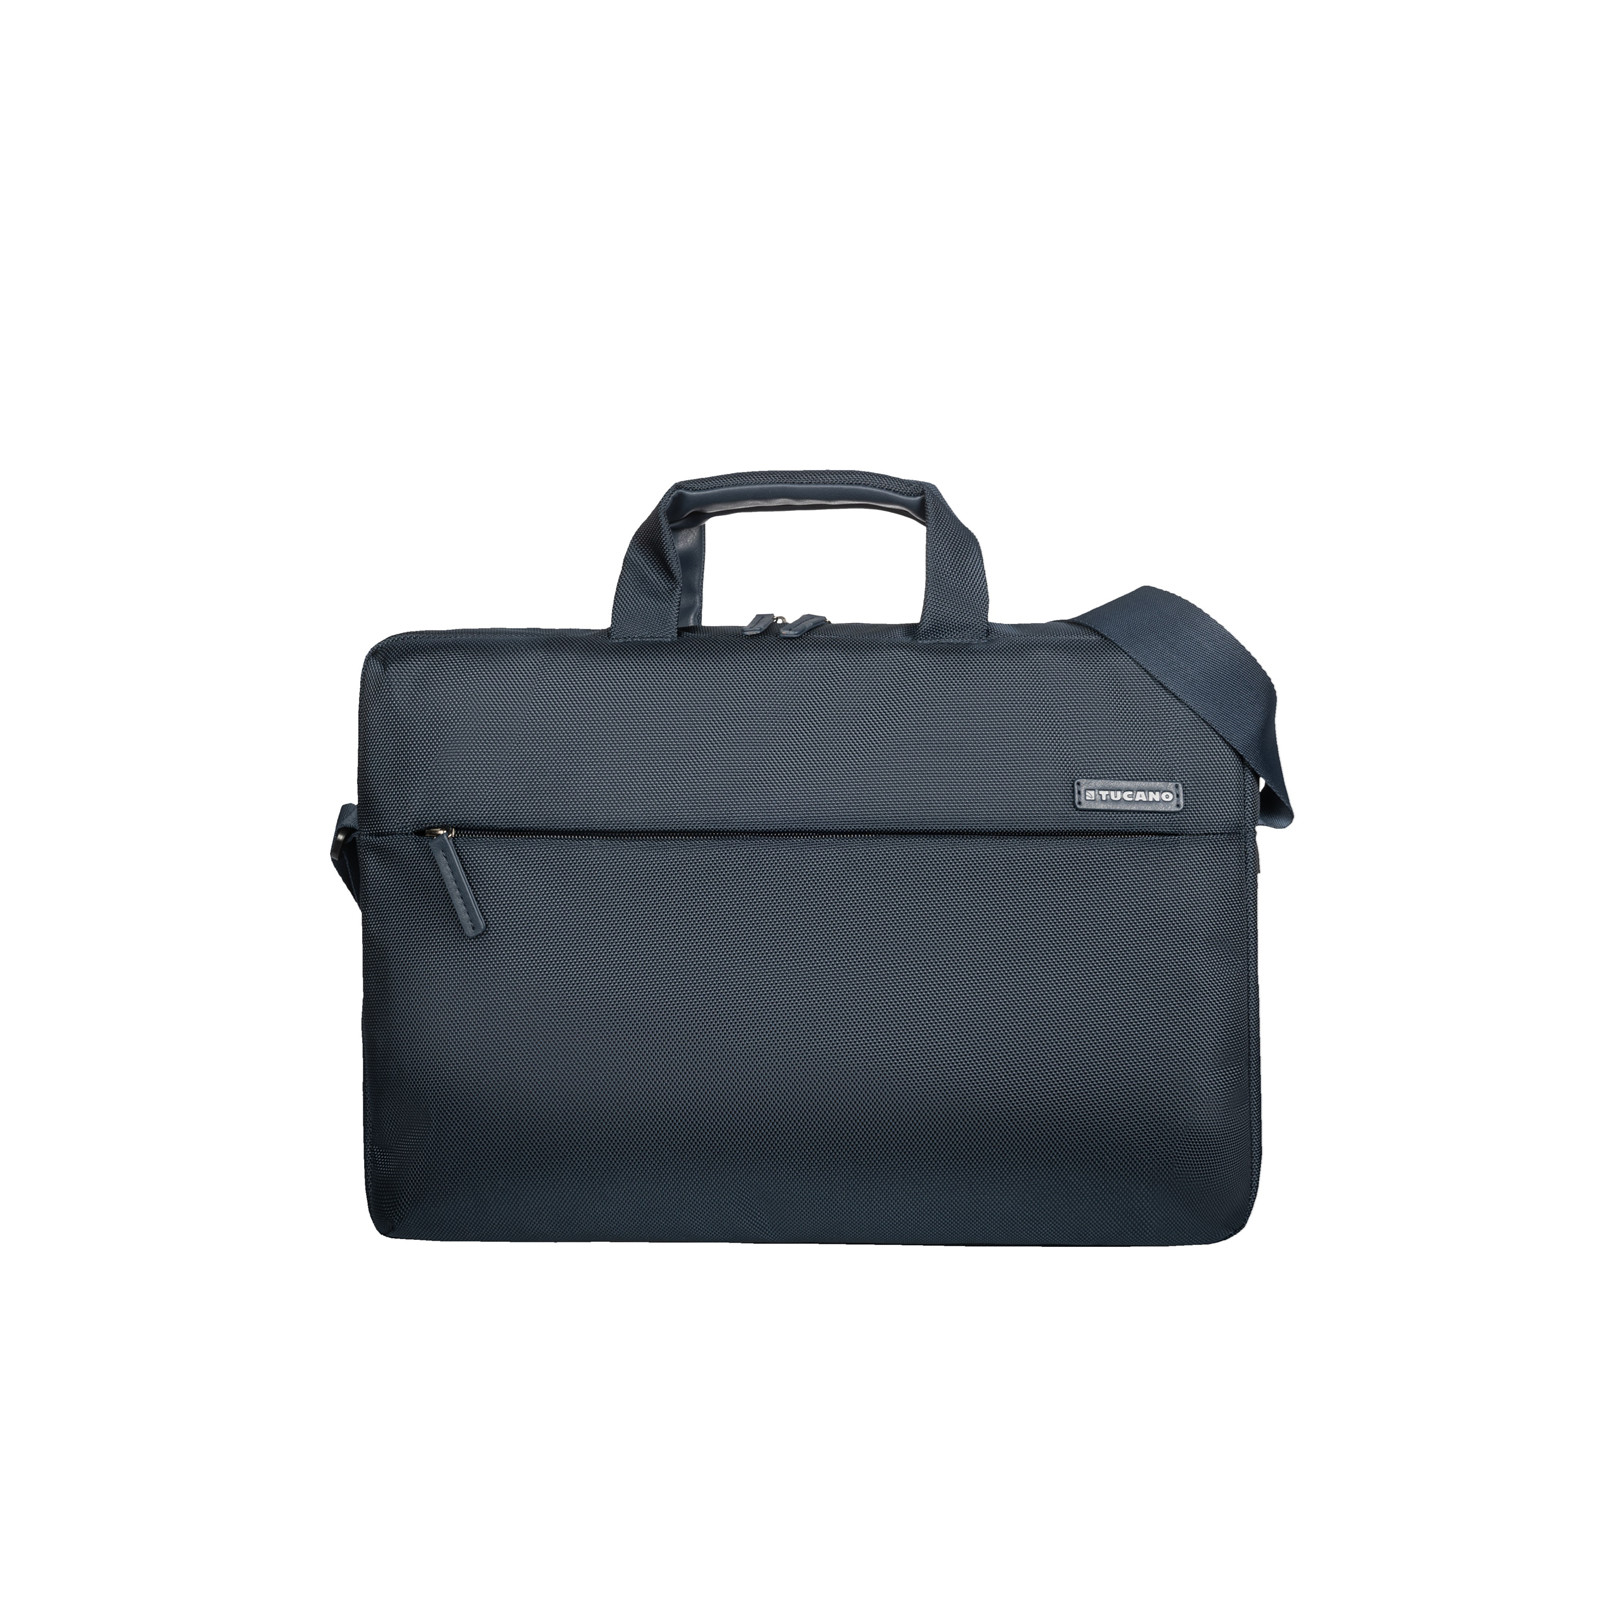 Tucano Free & Busy Business bag 14'' laptop/15'' MacBook Pro, Blue